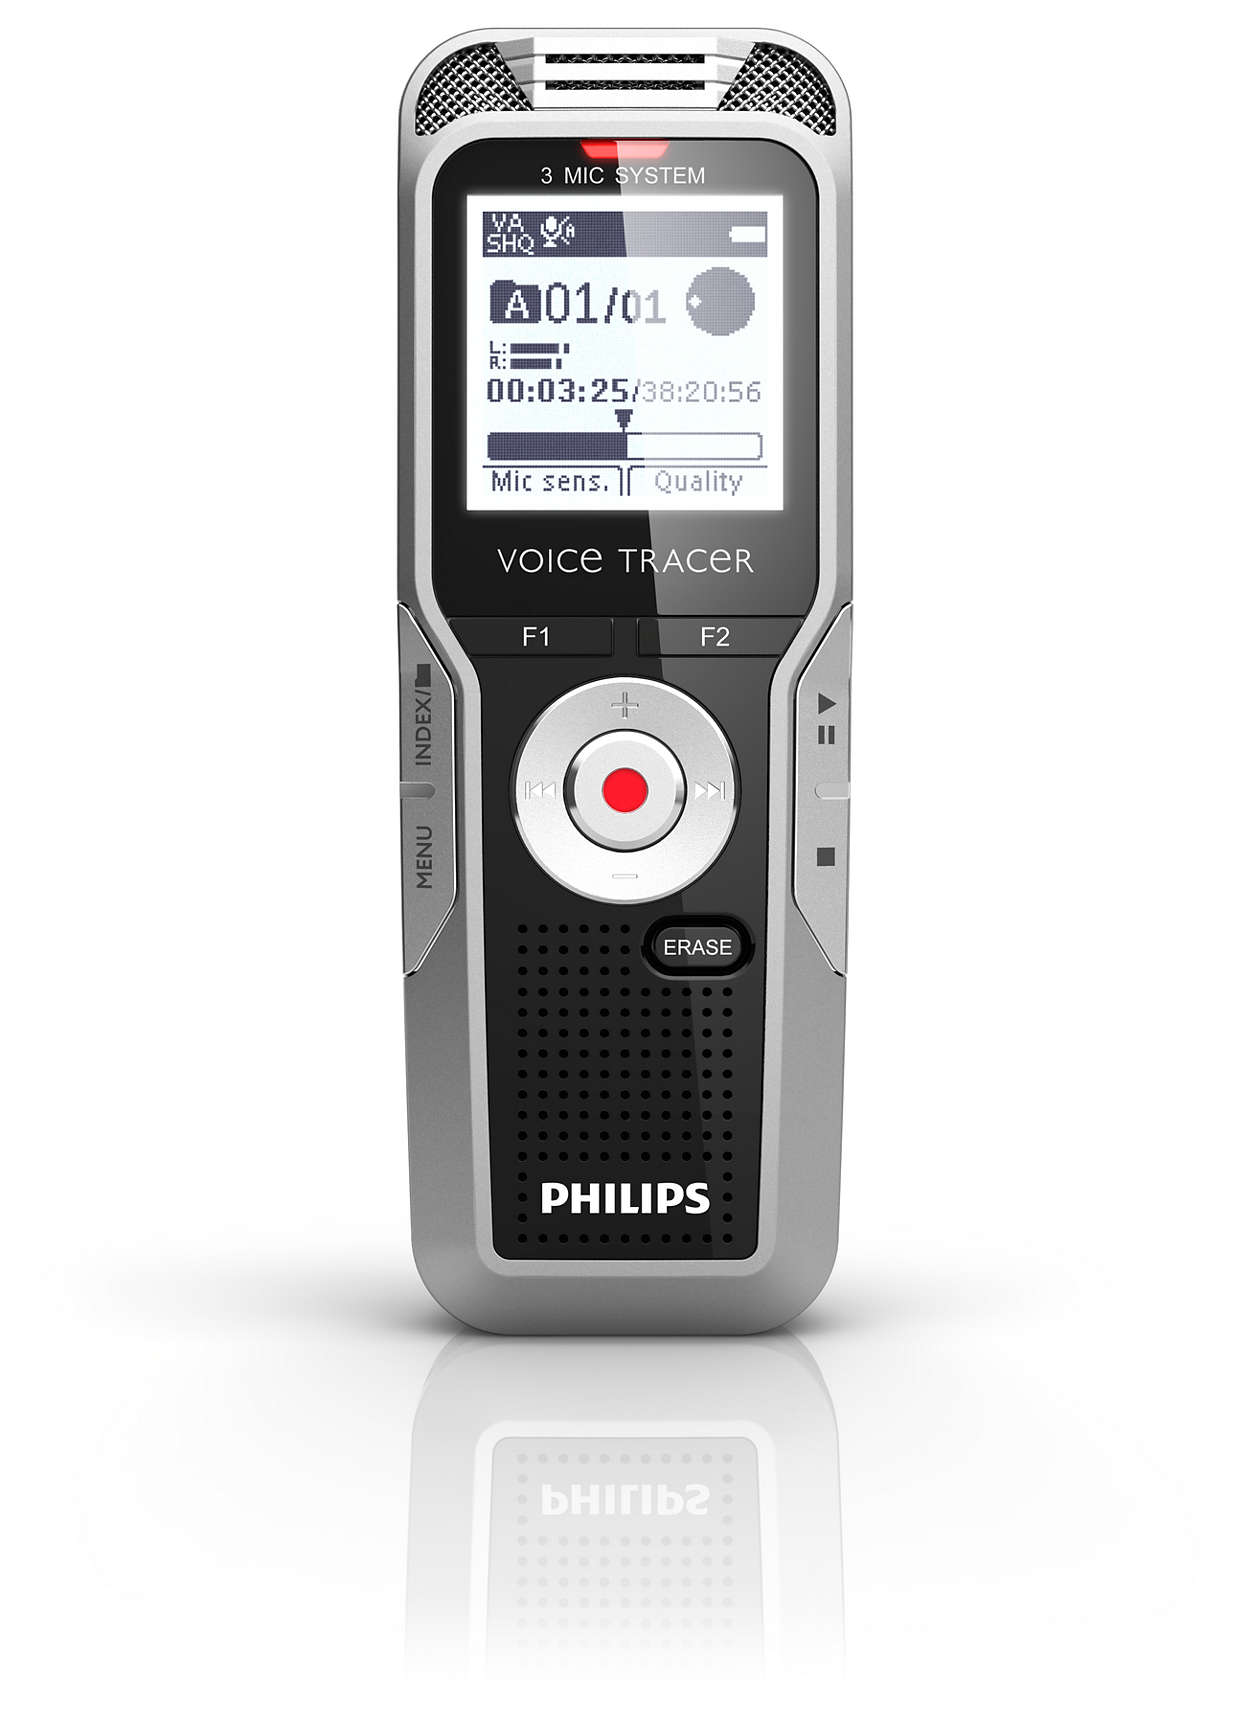 philips voice tracer digital recorder user manual